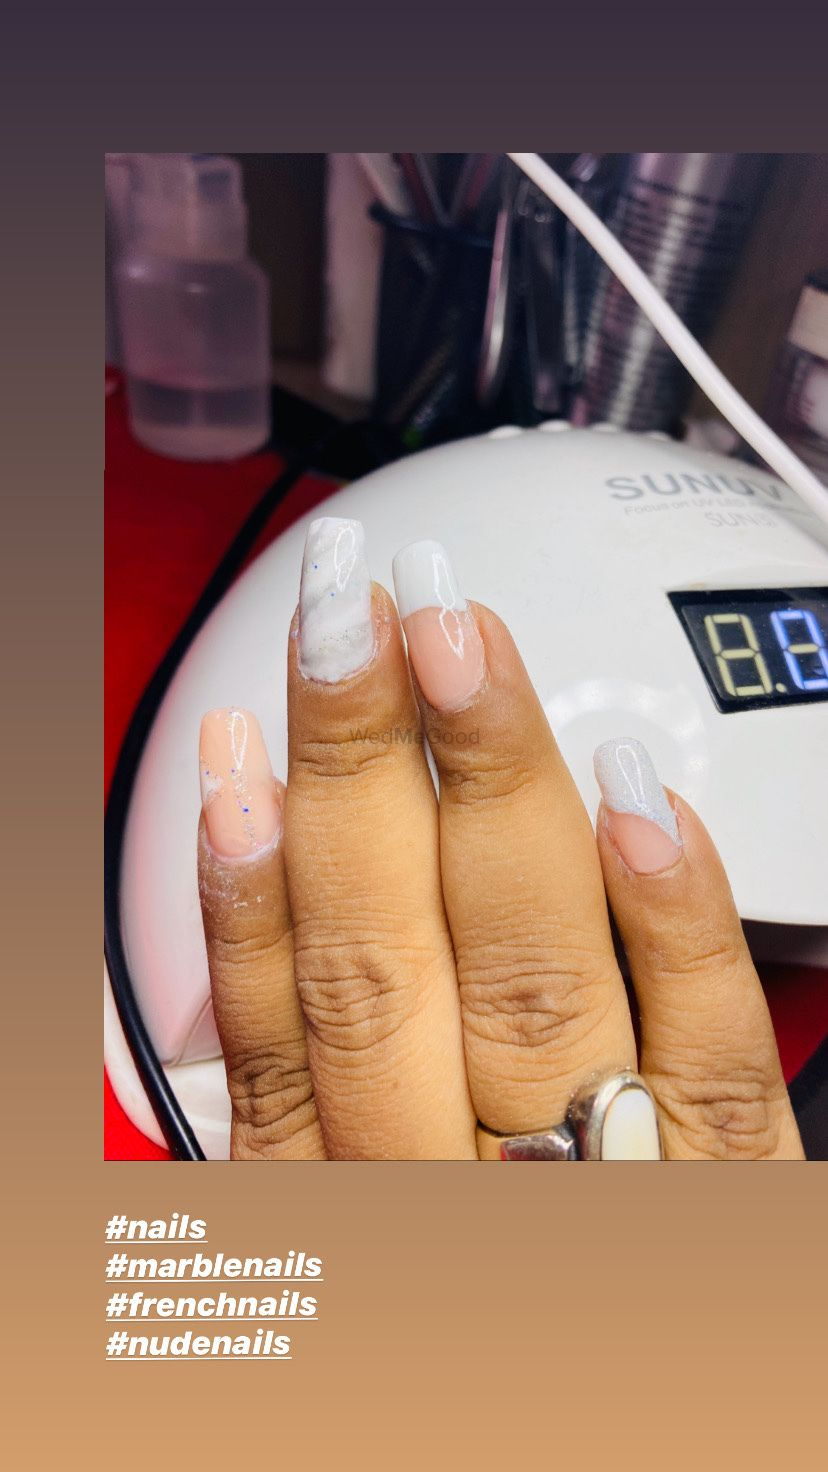 Photo From Nails - By Saura Salon